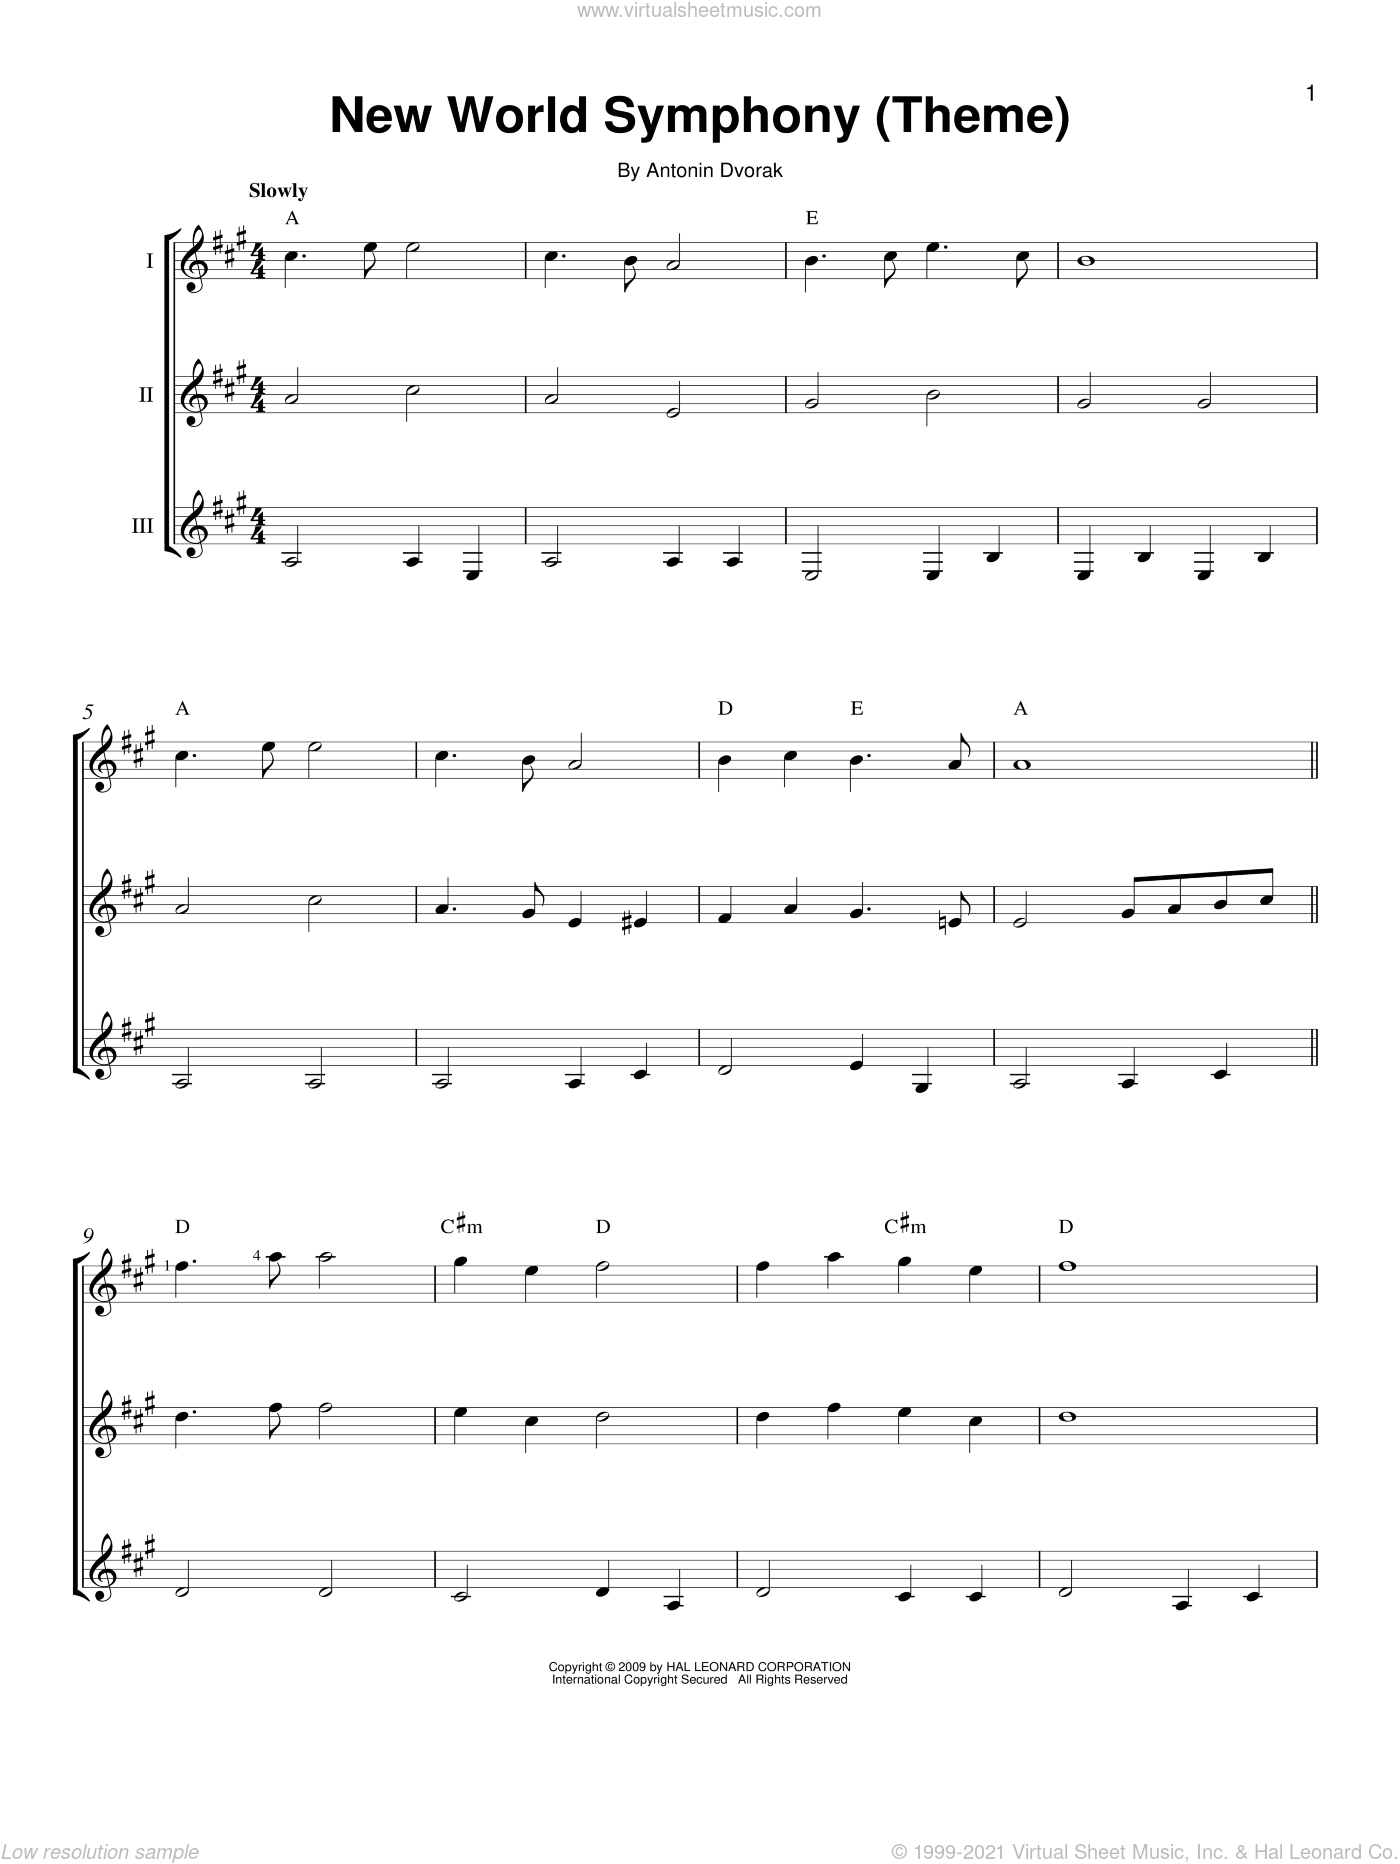 New World Symphony (Theme) sheet music for guitar ensemble by Antonin Dvorak, classical score, intermediate